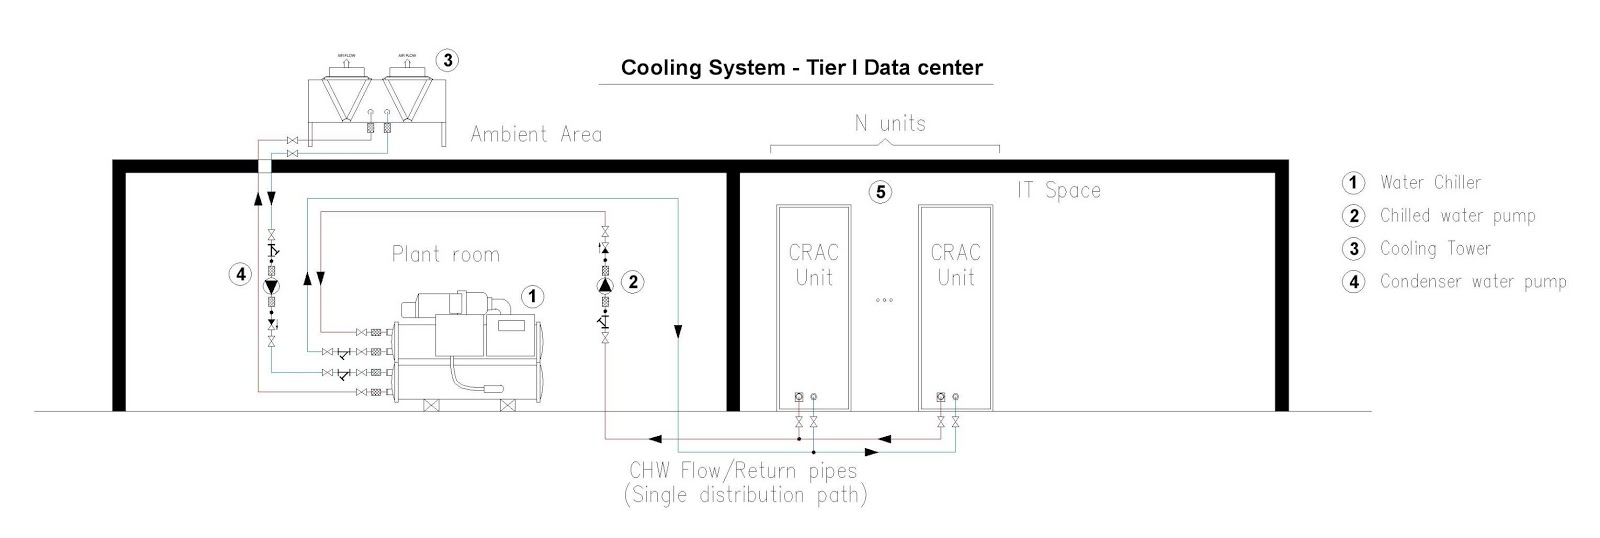 small resolution of 02 a tier i water system crac unit contain single or more running capacity components this includes a combination of water chiller cooling tower